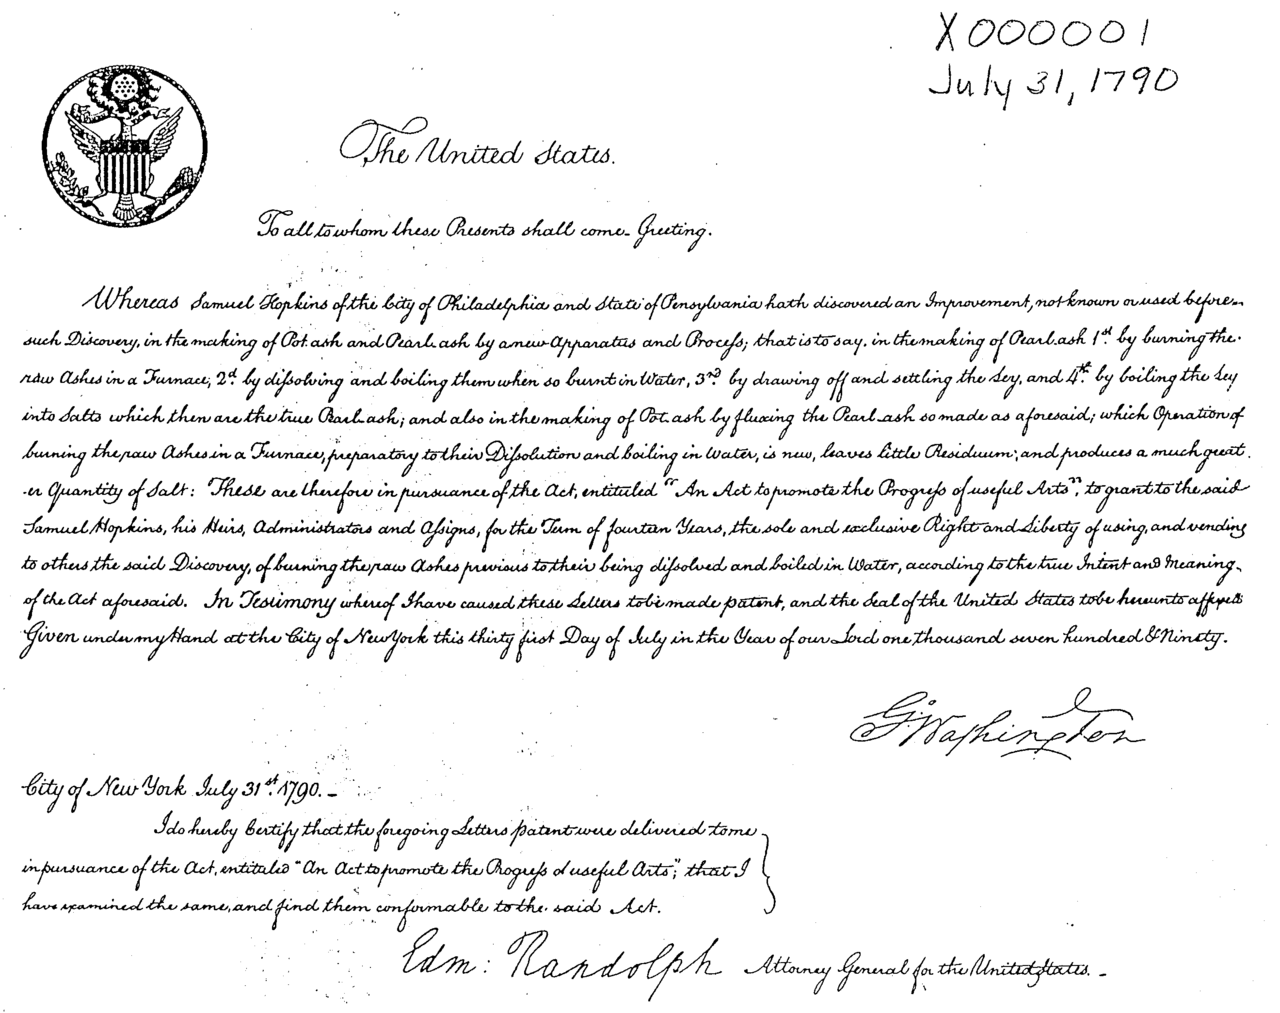 July 31, 1790: The First U.S. Patent Is Issued